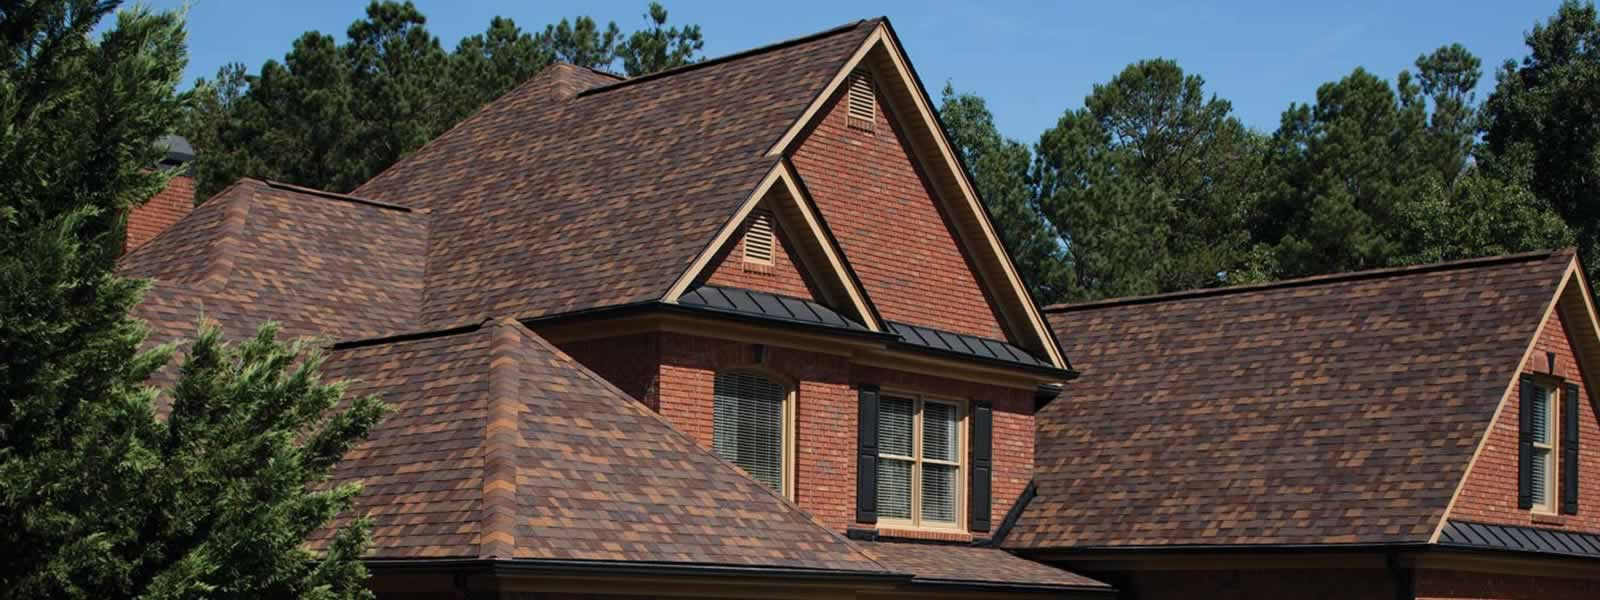 Roofing Contractor Monticello Mn Protech Restoration